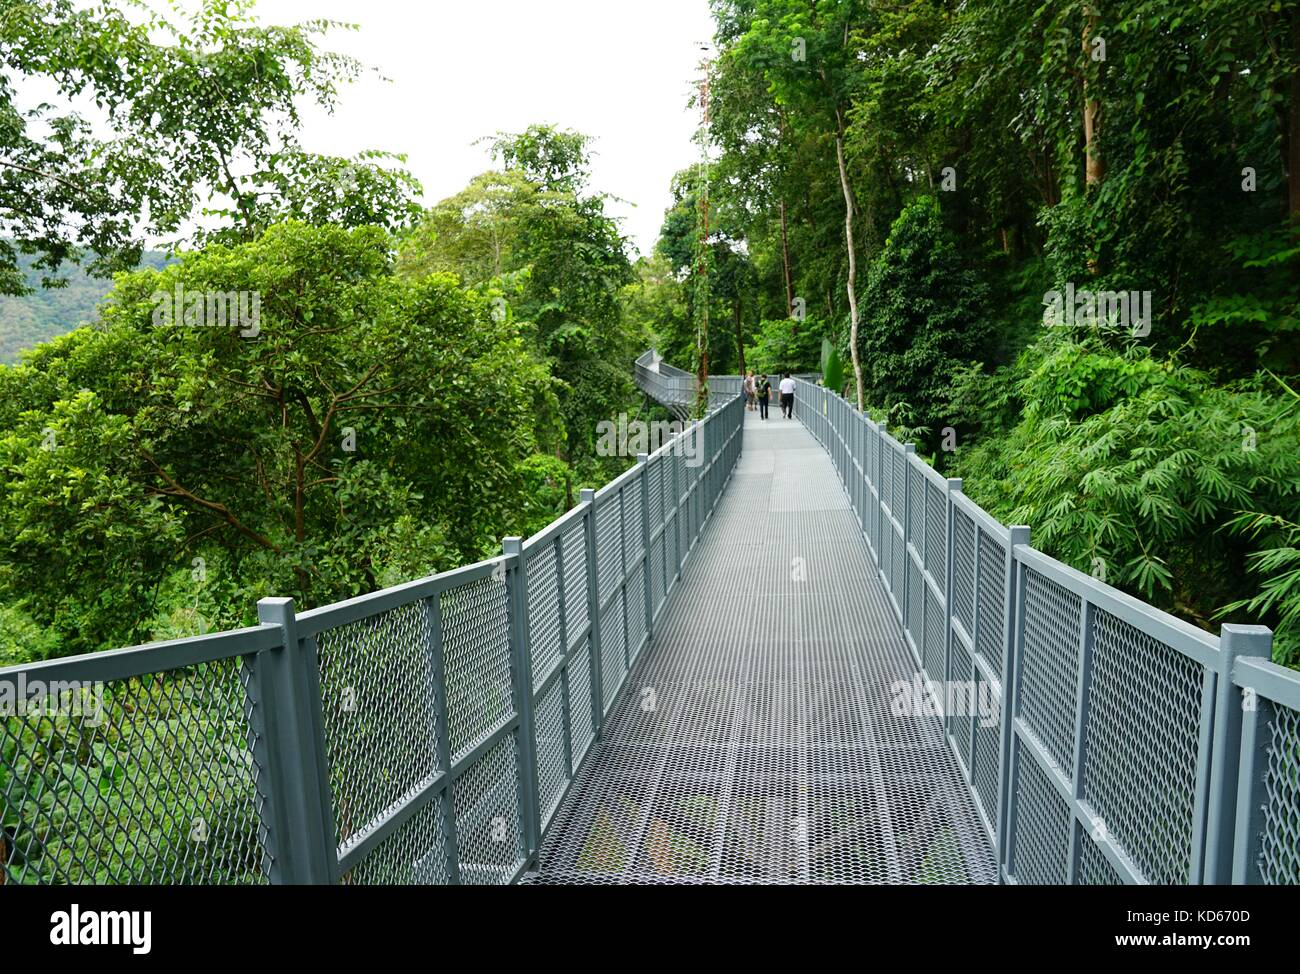 Tree Canopy Walkway, The Iron Bridge in the tropical forest at Queen Sirikit Botanic Garden, Chiang Mai, Thailand - Stock Image